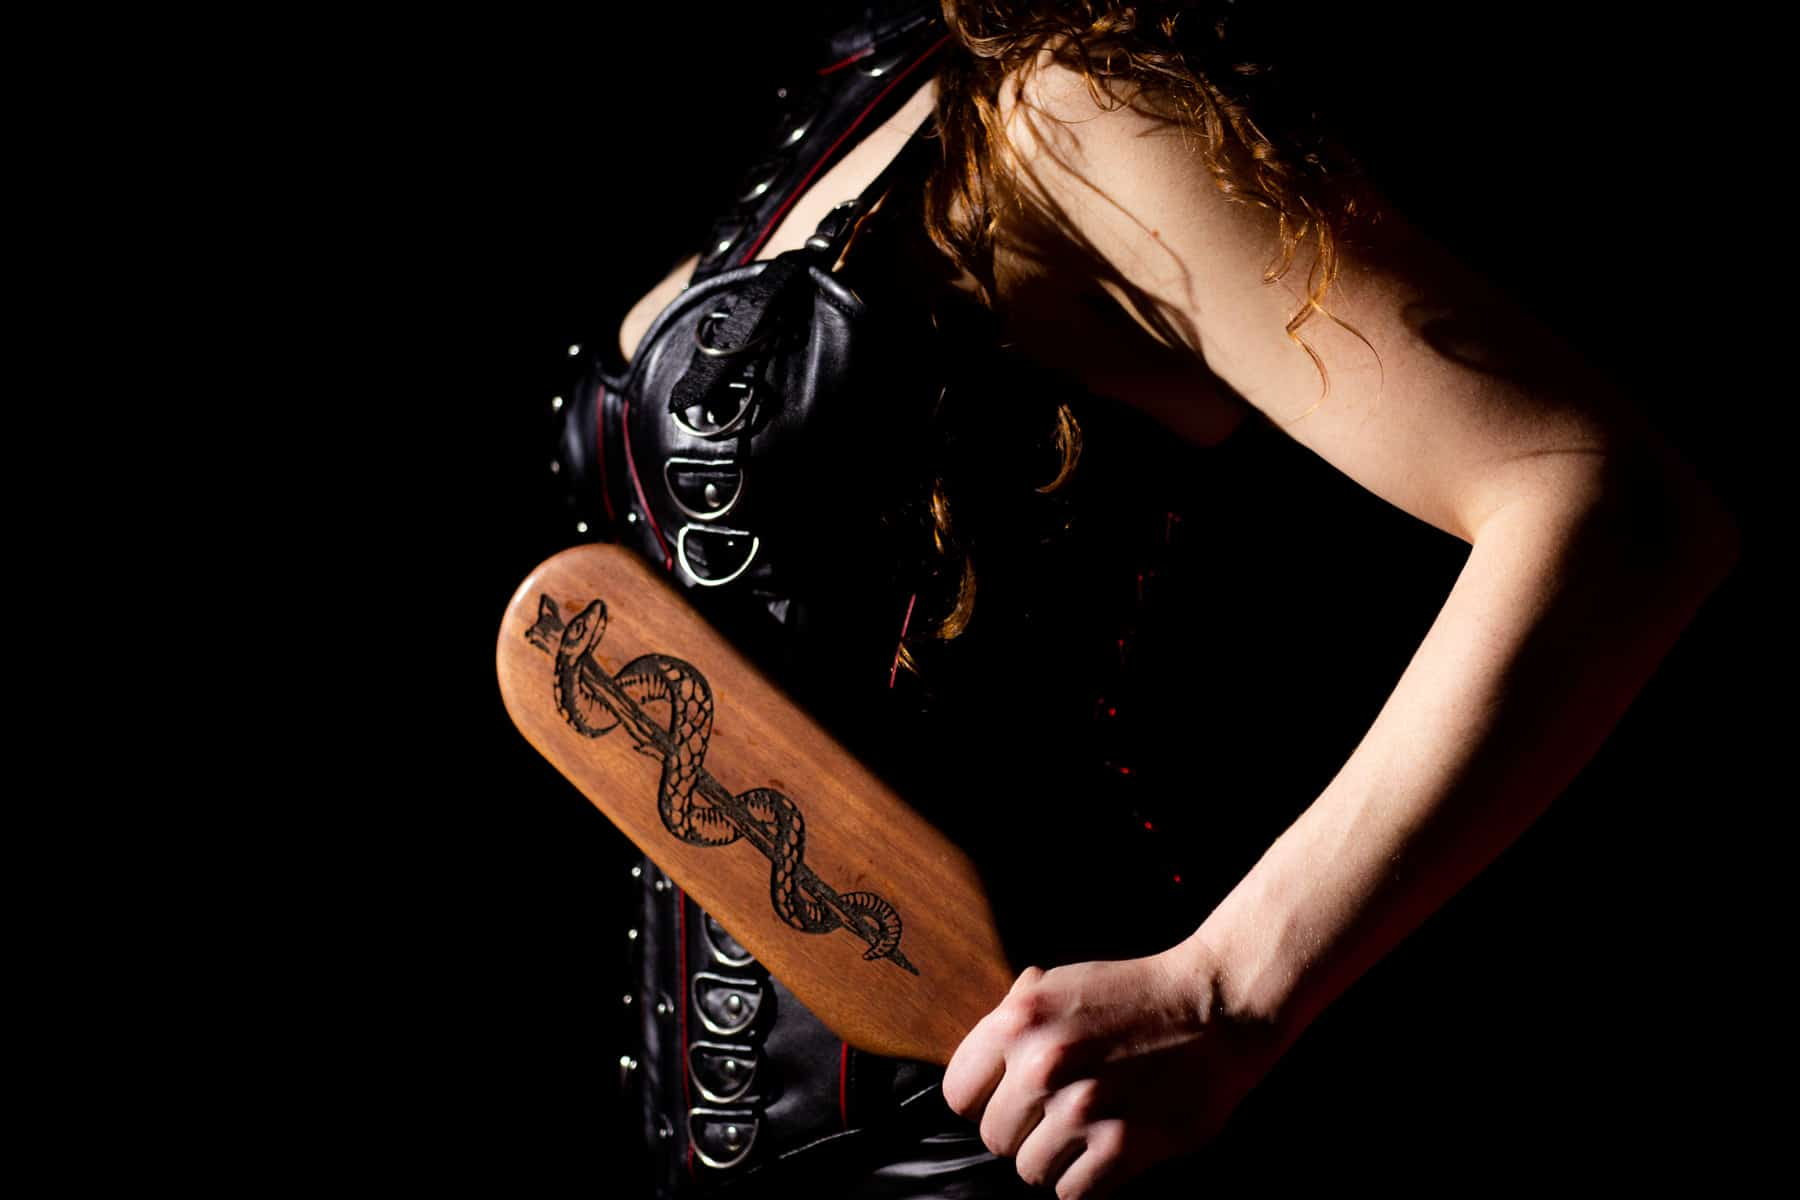 chicago dominatrix asclepius wooden paddle leather corset dominatrix powerful corporal punishment discipline paddling pain pleasure masochist sadist sadistic sadism